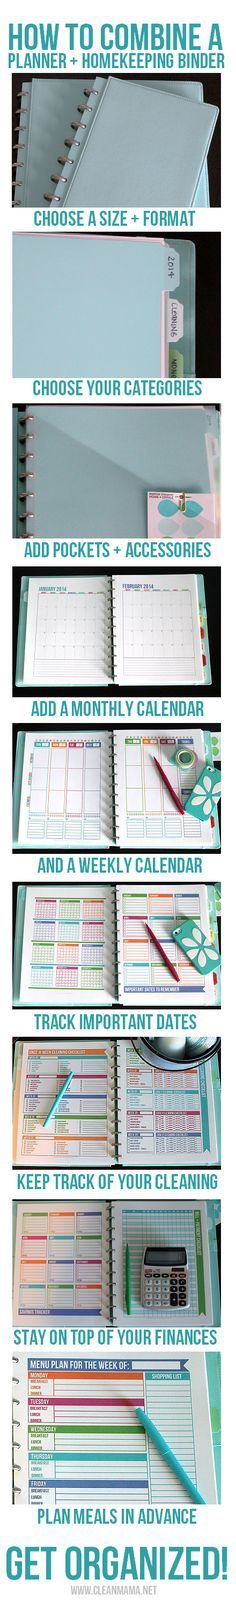 Make your planner work to it's full potential! How to combine your planner and cleaning schedule the best way!